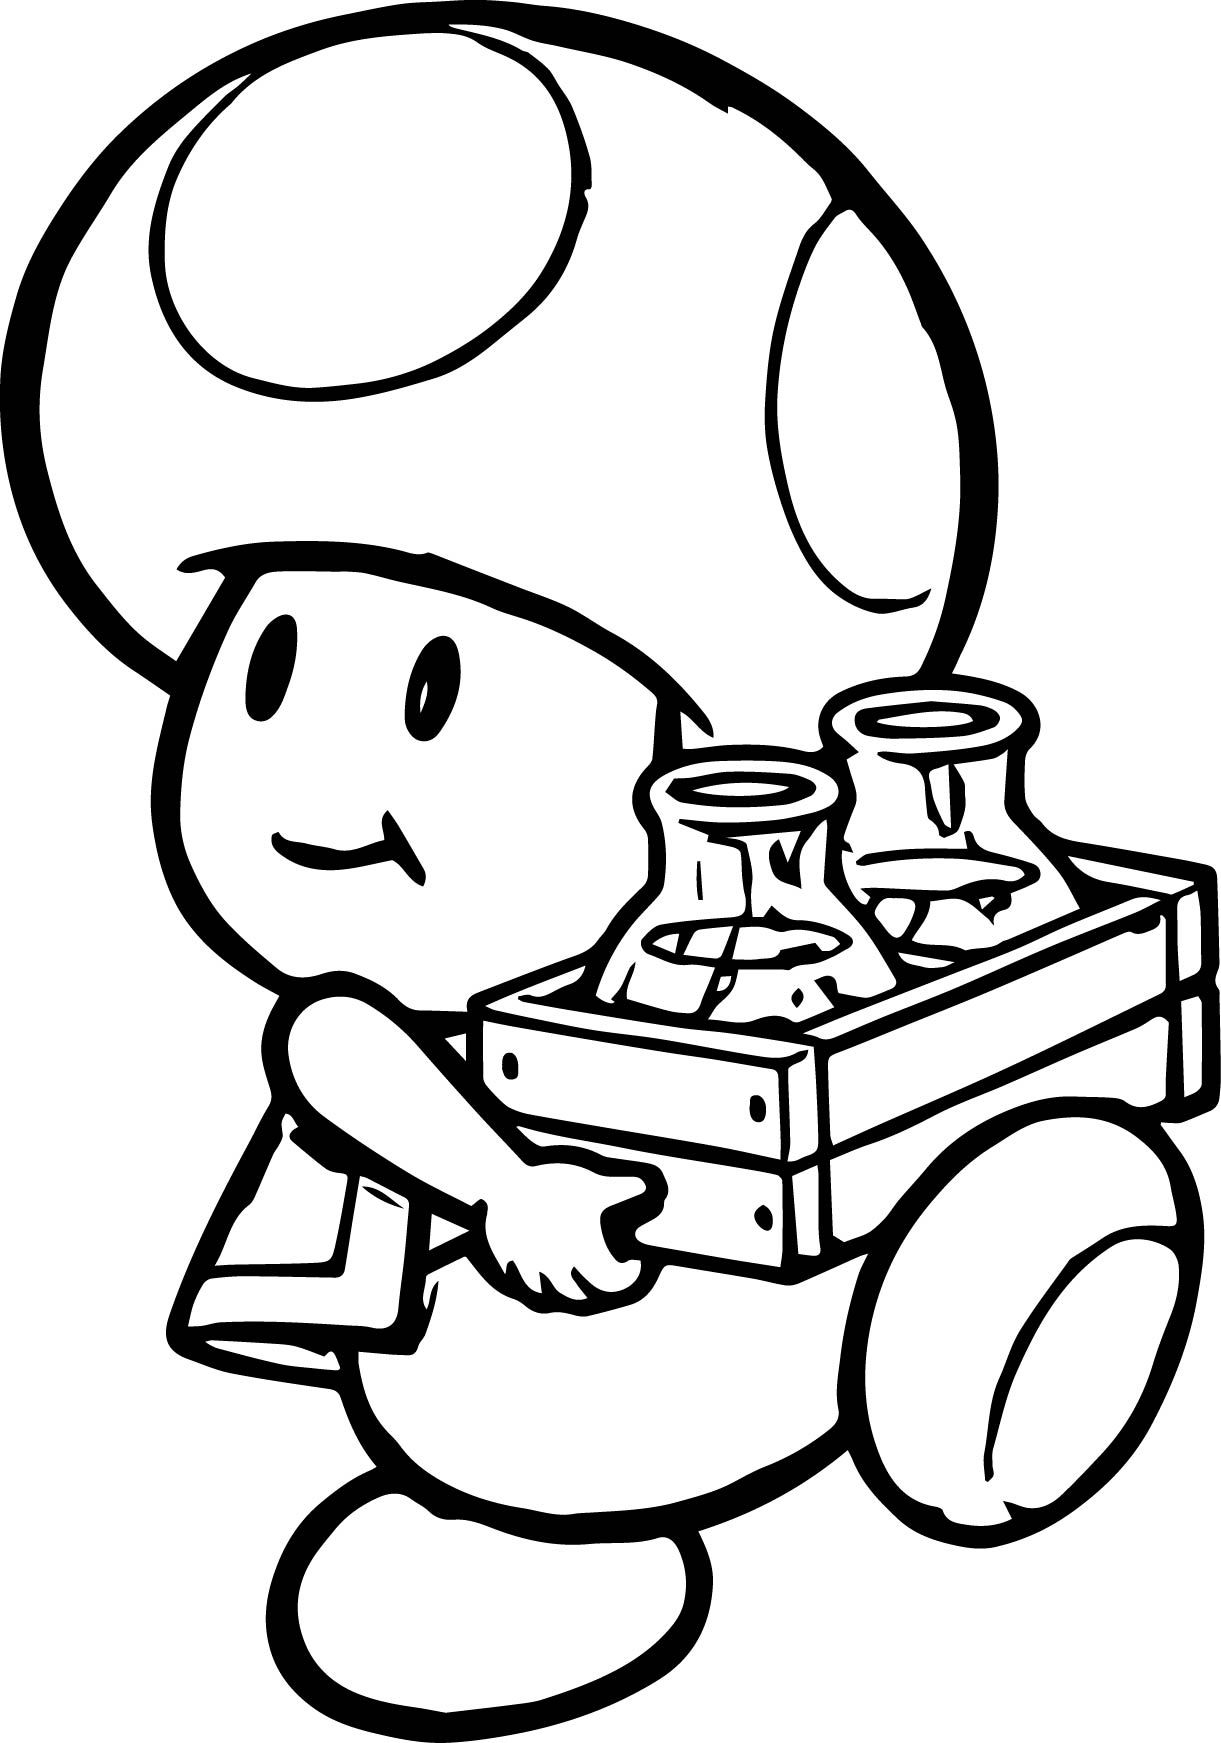 Nintendo Coloring Pages Super Mario Coloring Pages Coloring